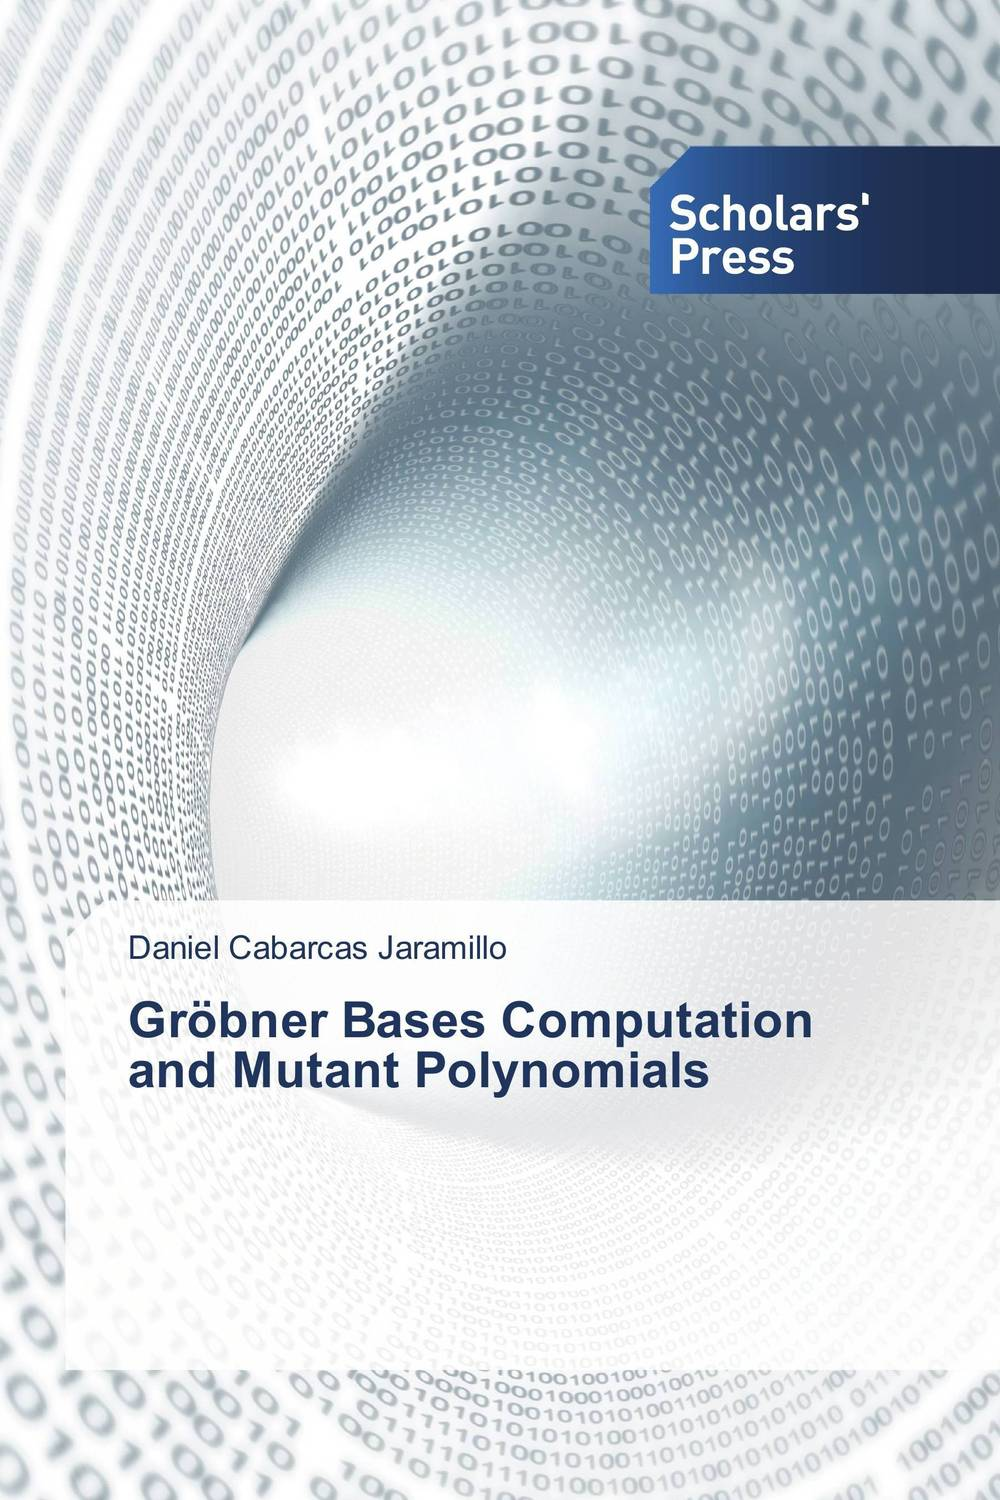 Grobner Bases Computation and Mutant Polynomials